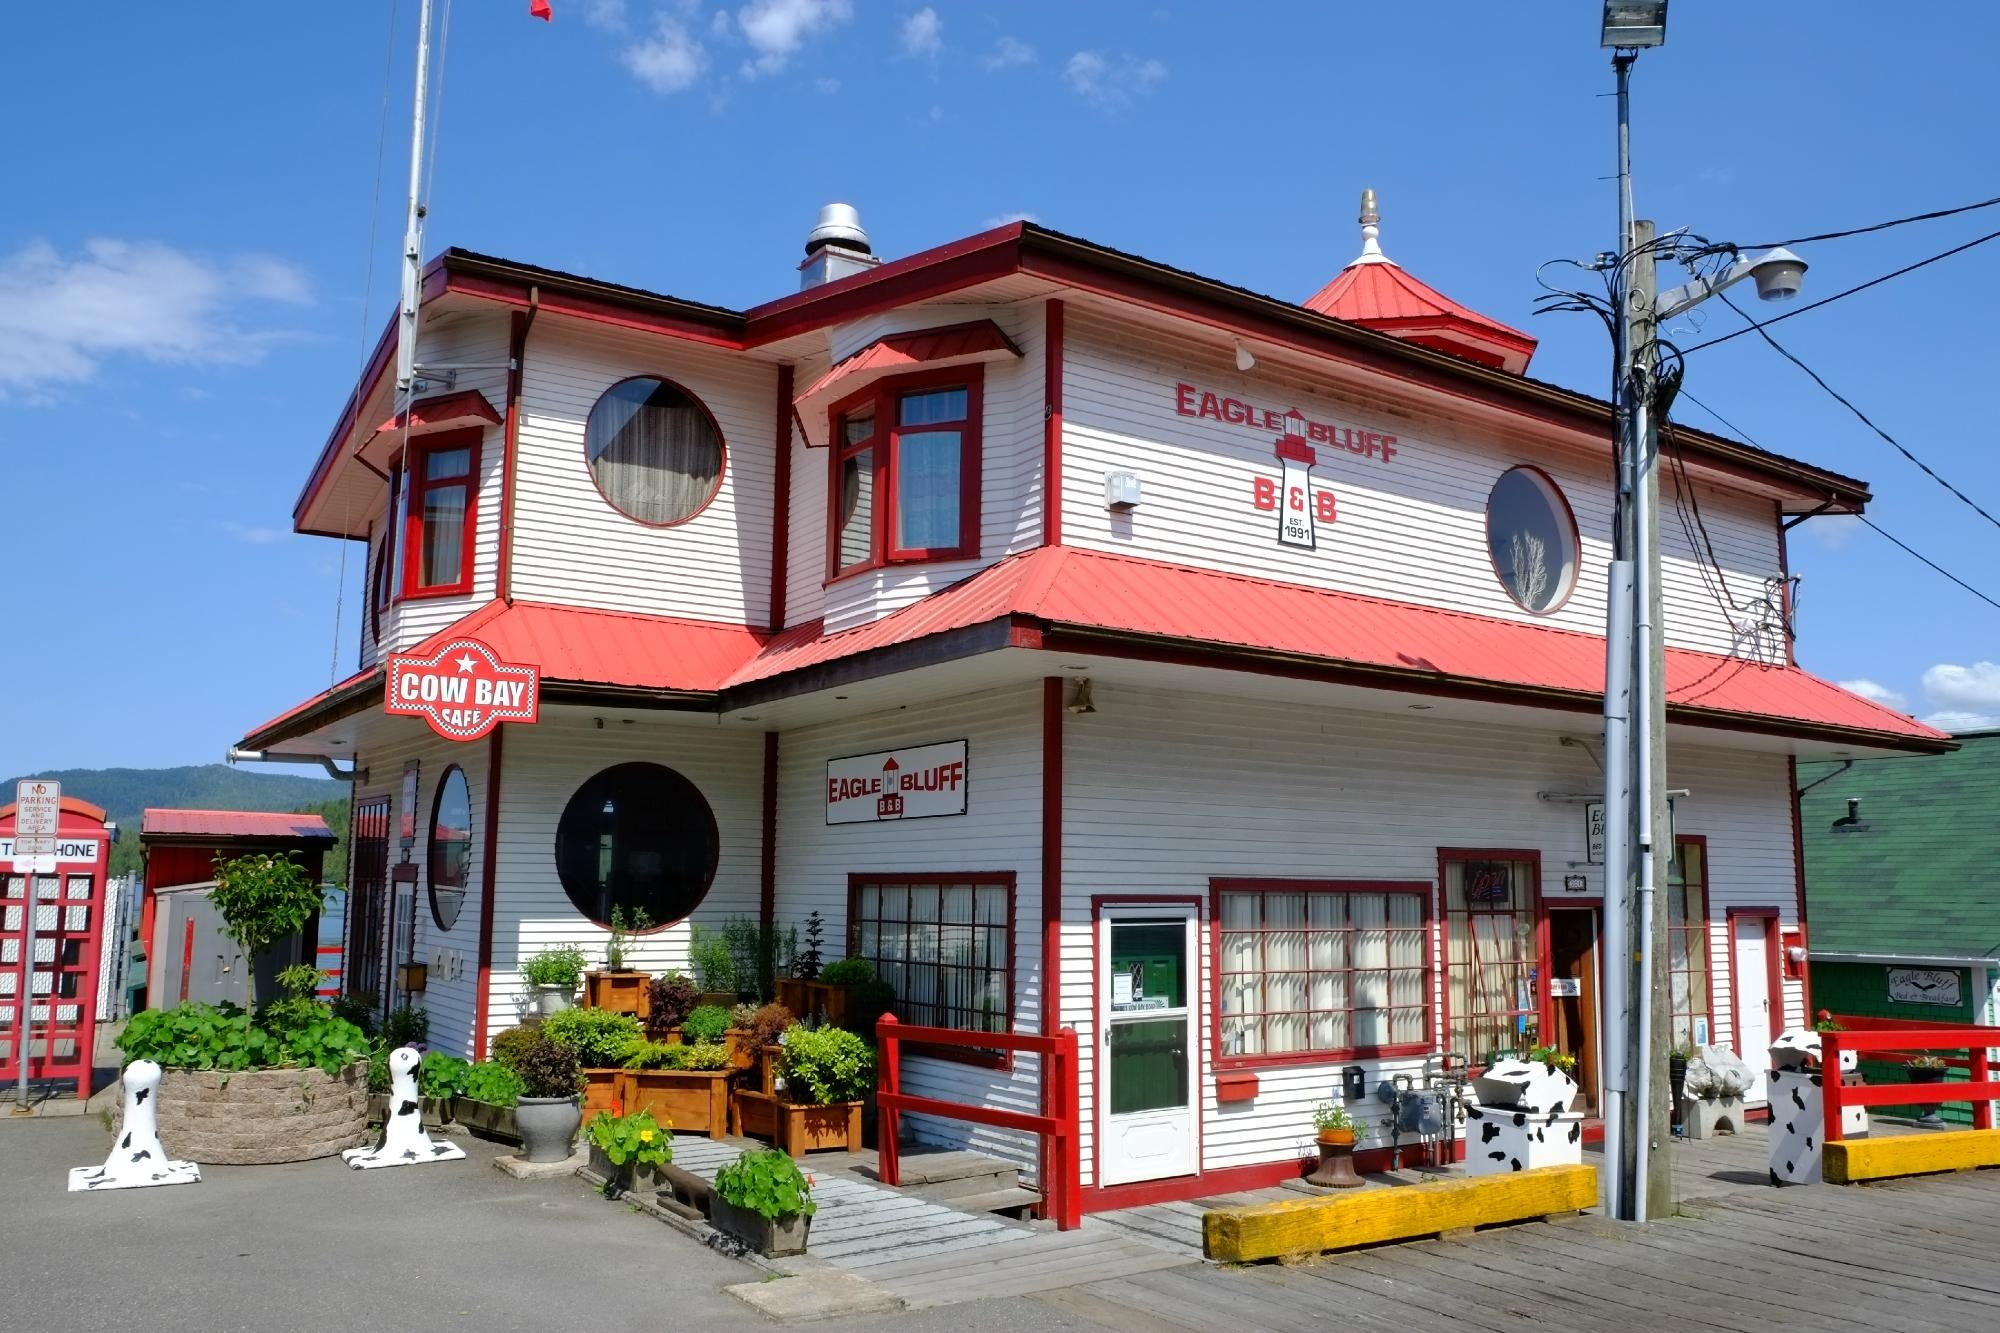 Cow Bay Cafe Restaurant, House styles, Cafe